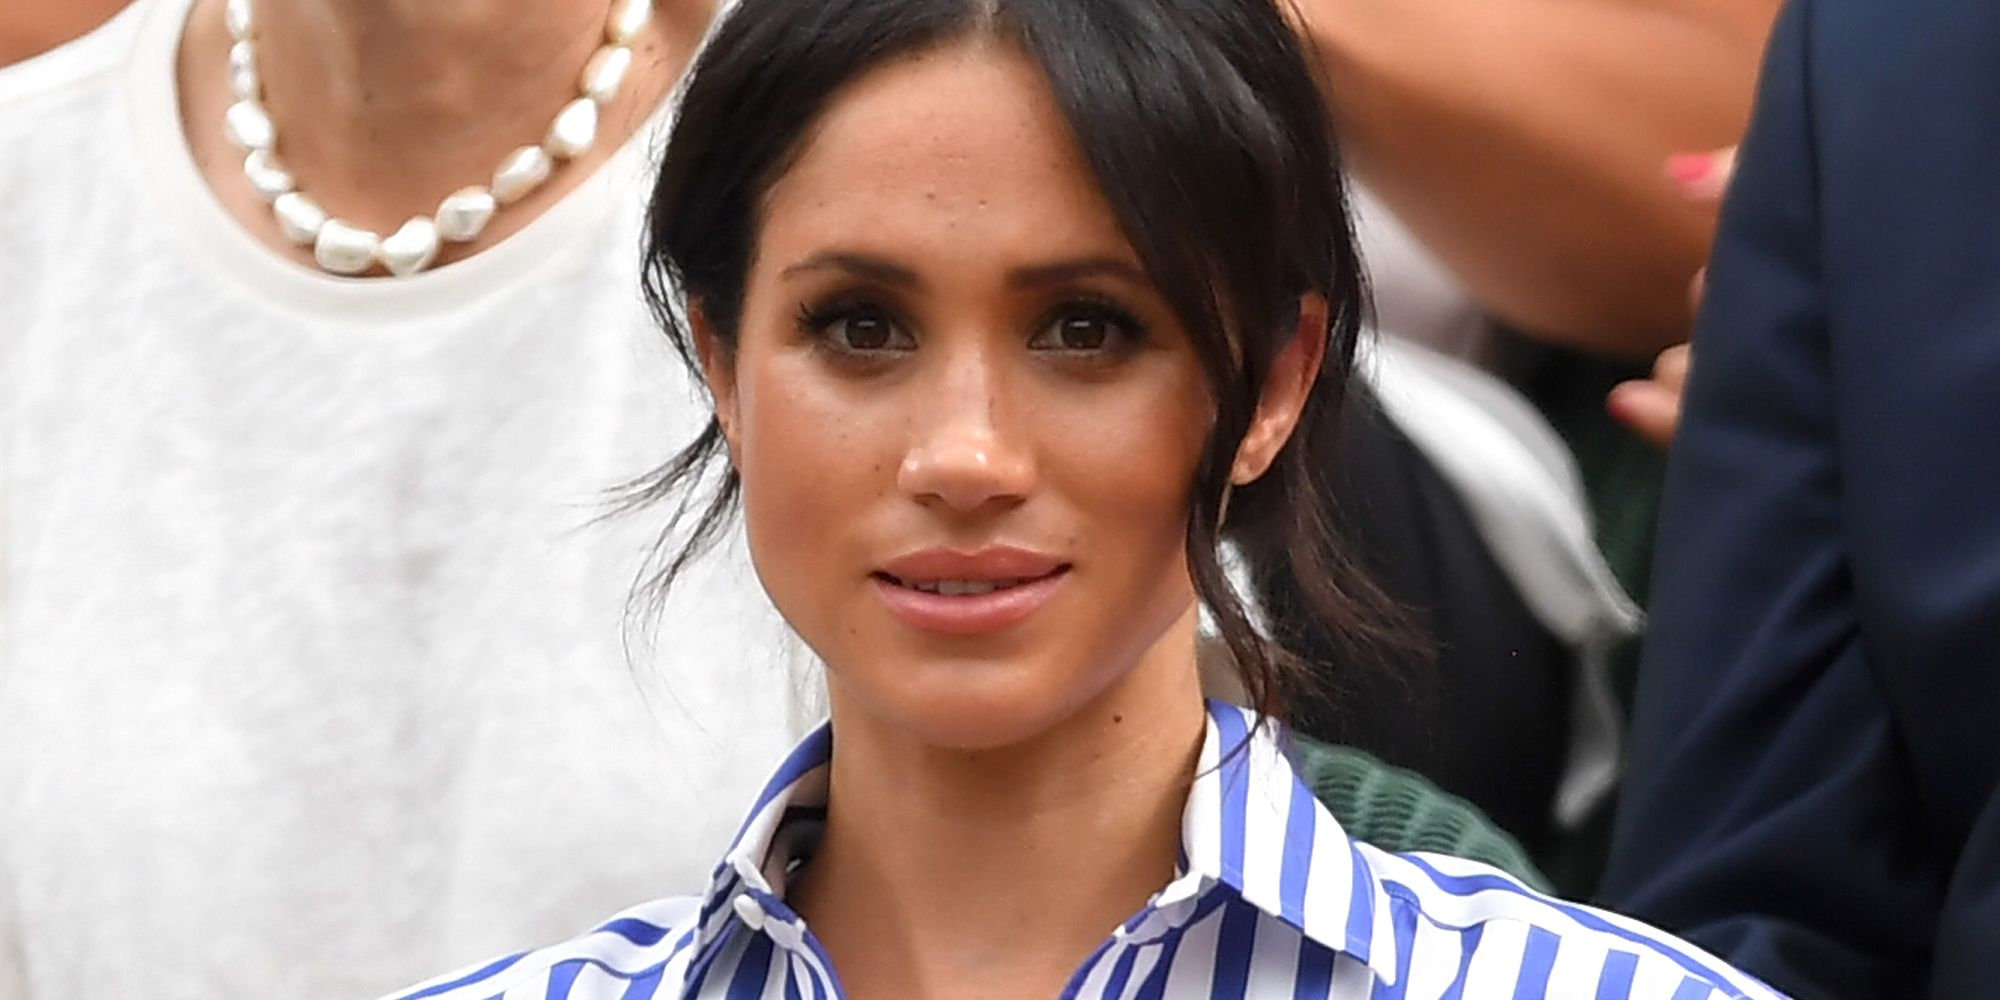 Meghan Markle's Dad Thomas Is Now Planning to Start His Own Clothing Line